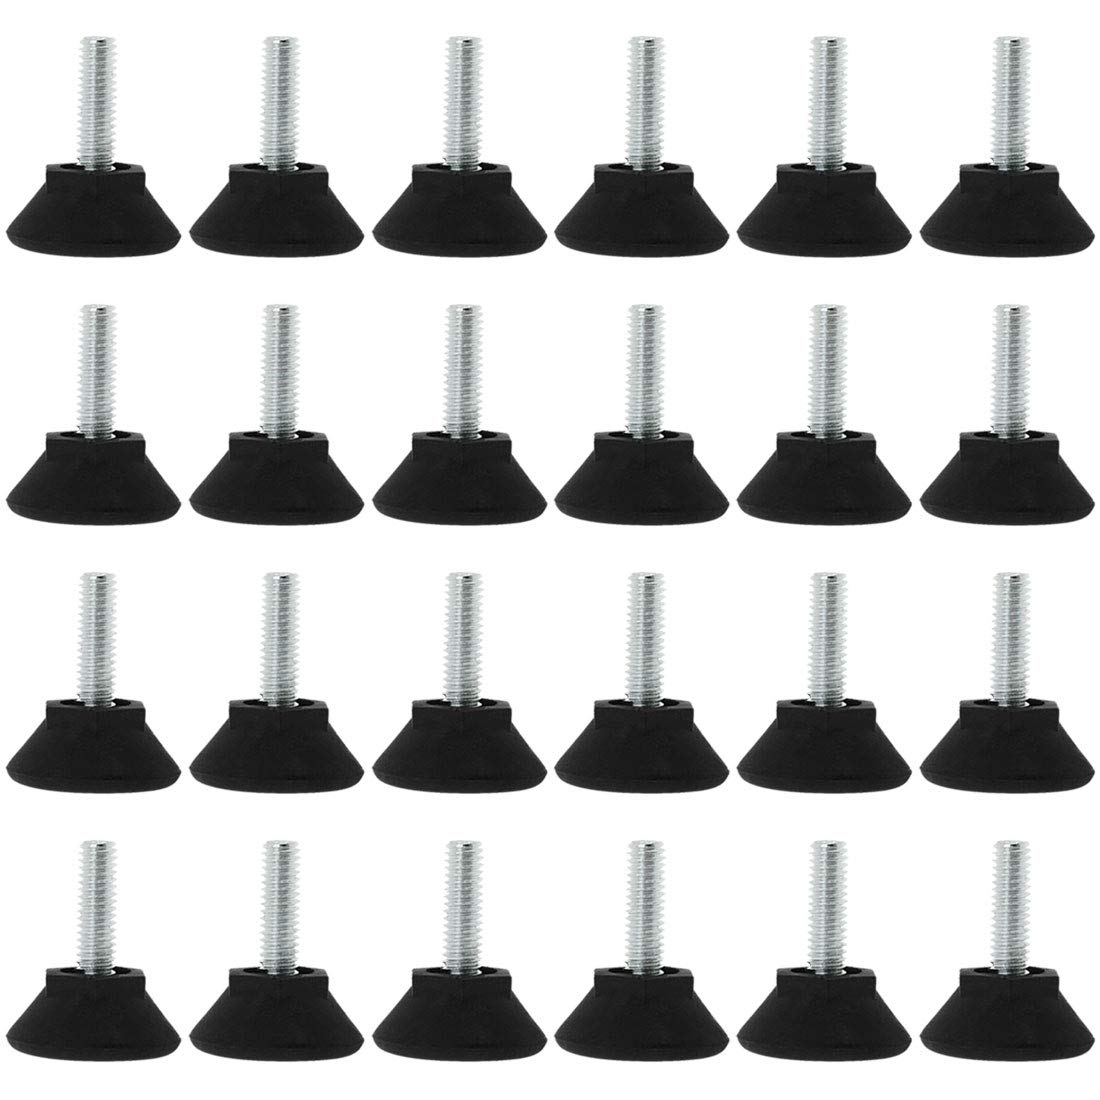 uxcell M6 x 20 x 25mm Furniture Glide Leveling Feet Adjustable Leveler Floor Protector for Chair sofa Table Leg 24 Pack